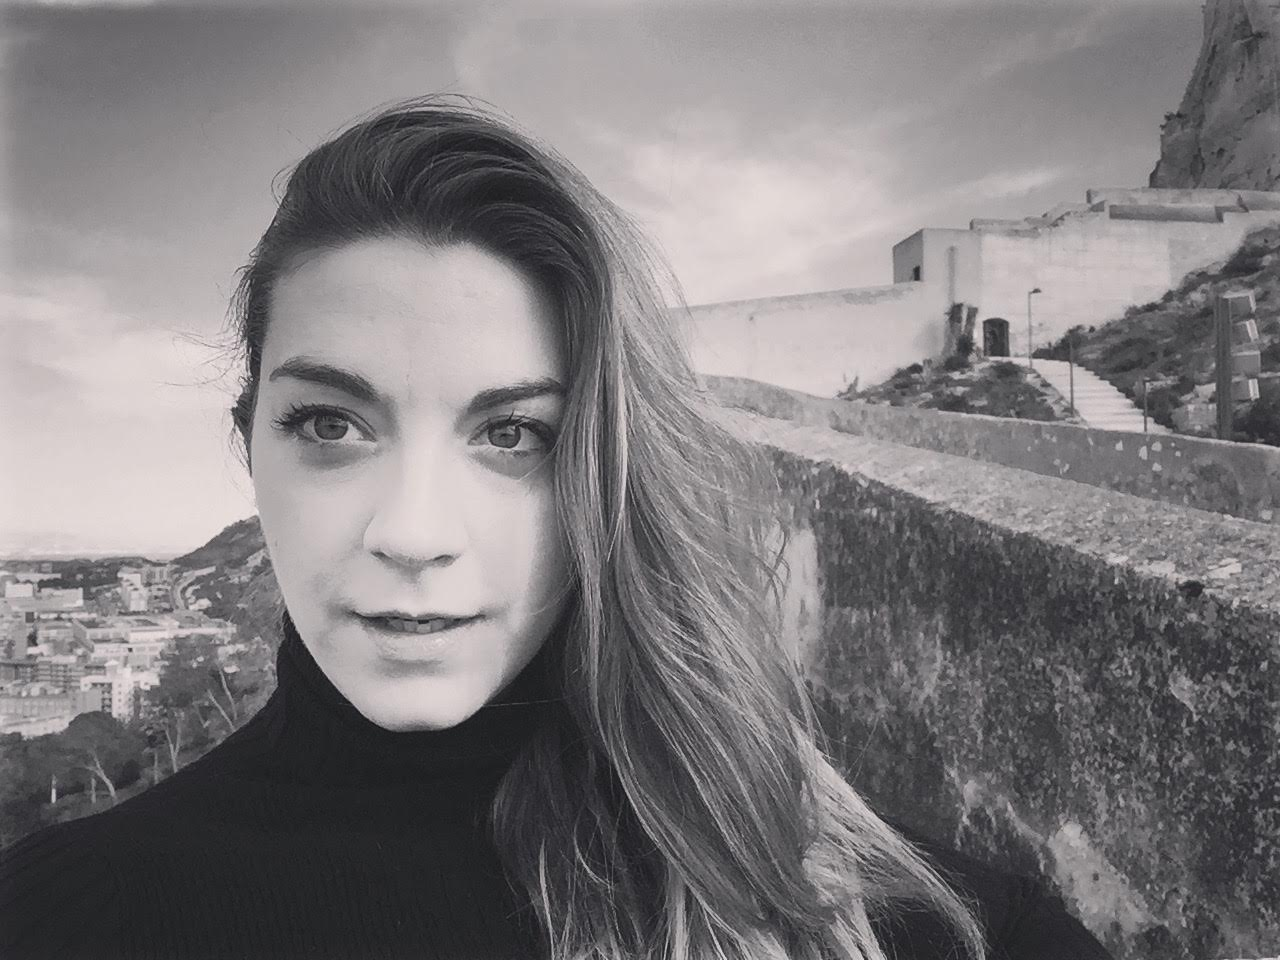 Mikaela Davies in front of Castle of Santa Bárbara in Alicante, Spain, where The Changeling is set.